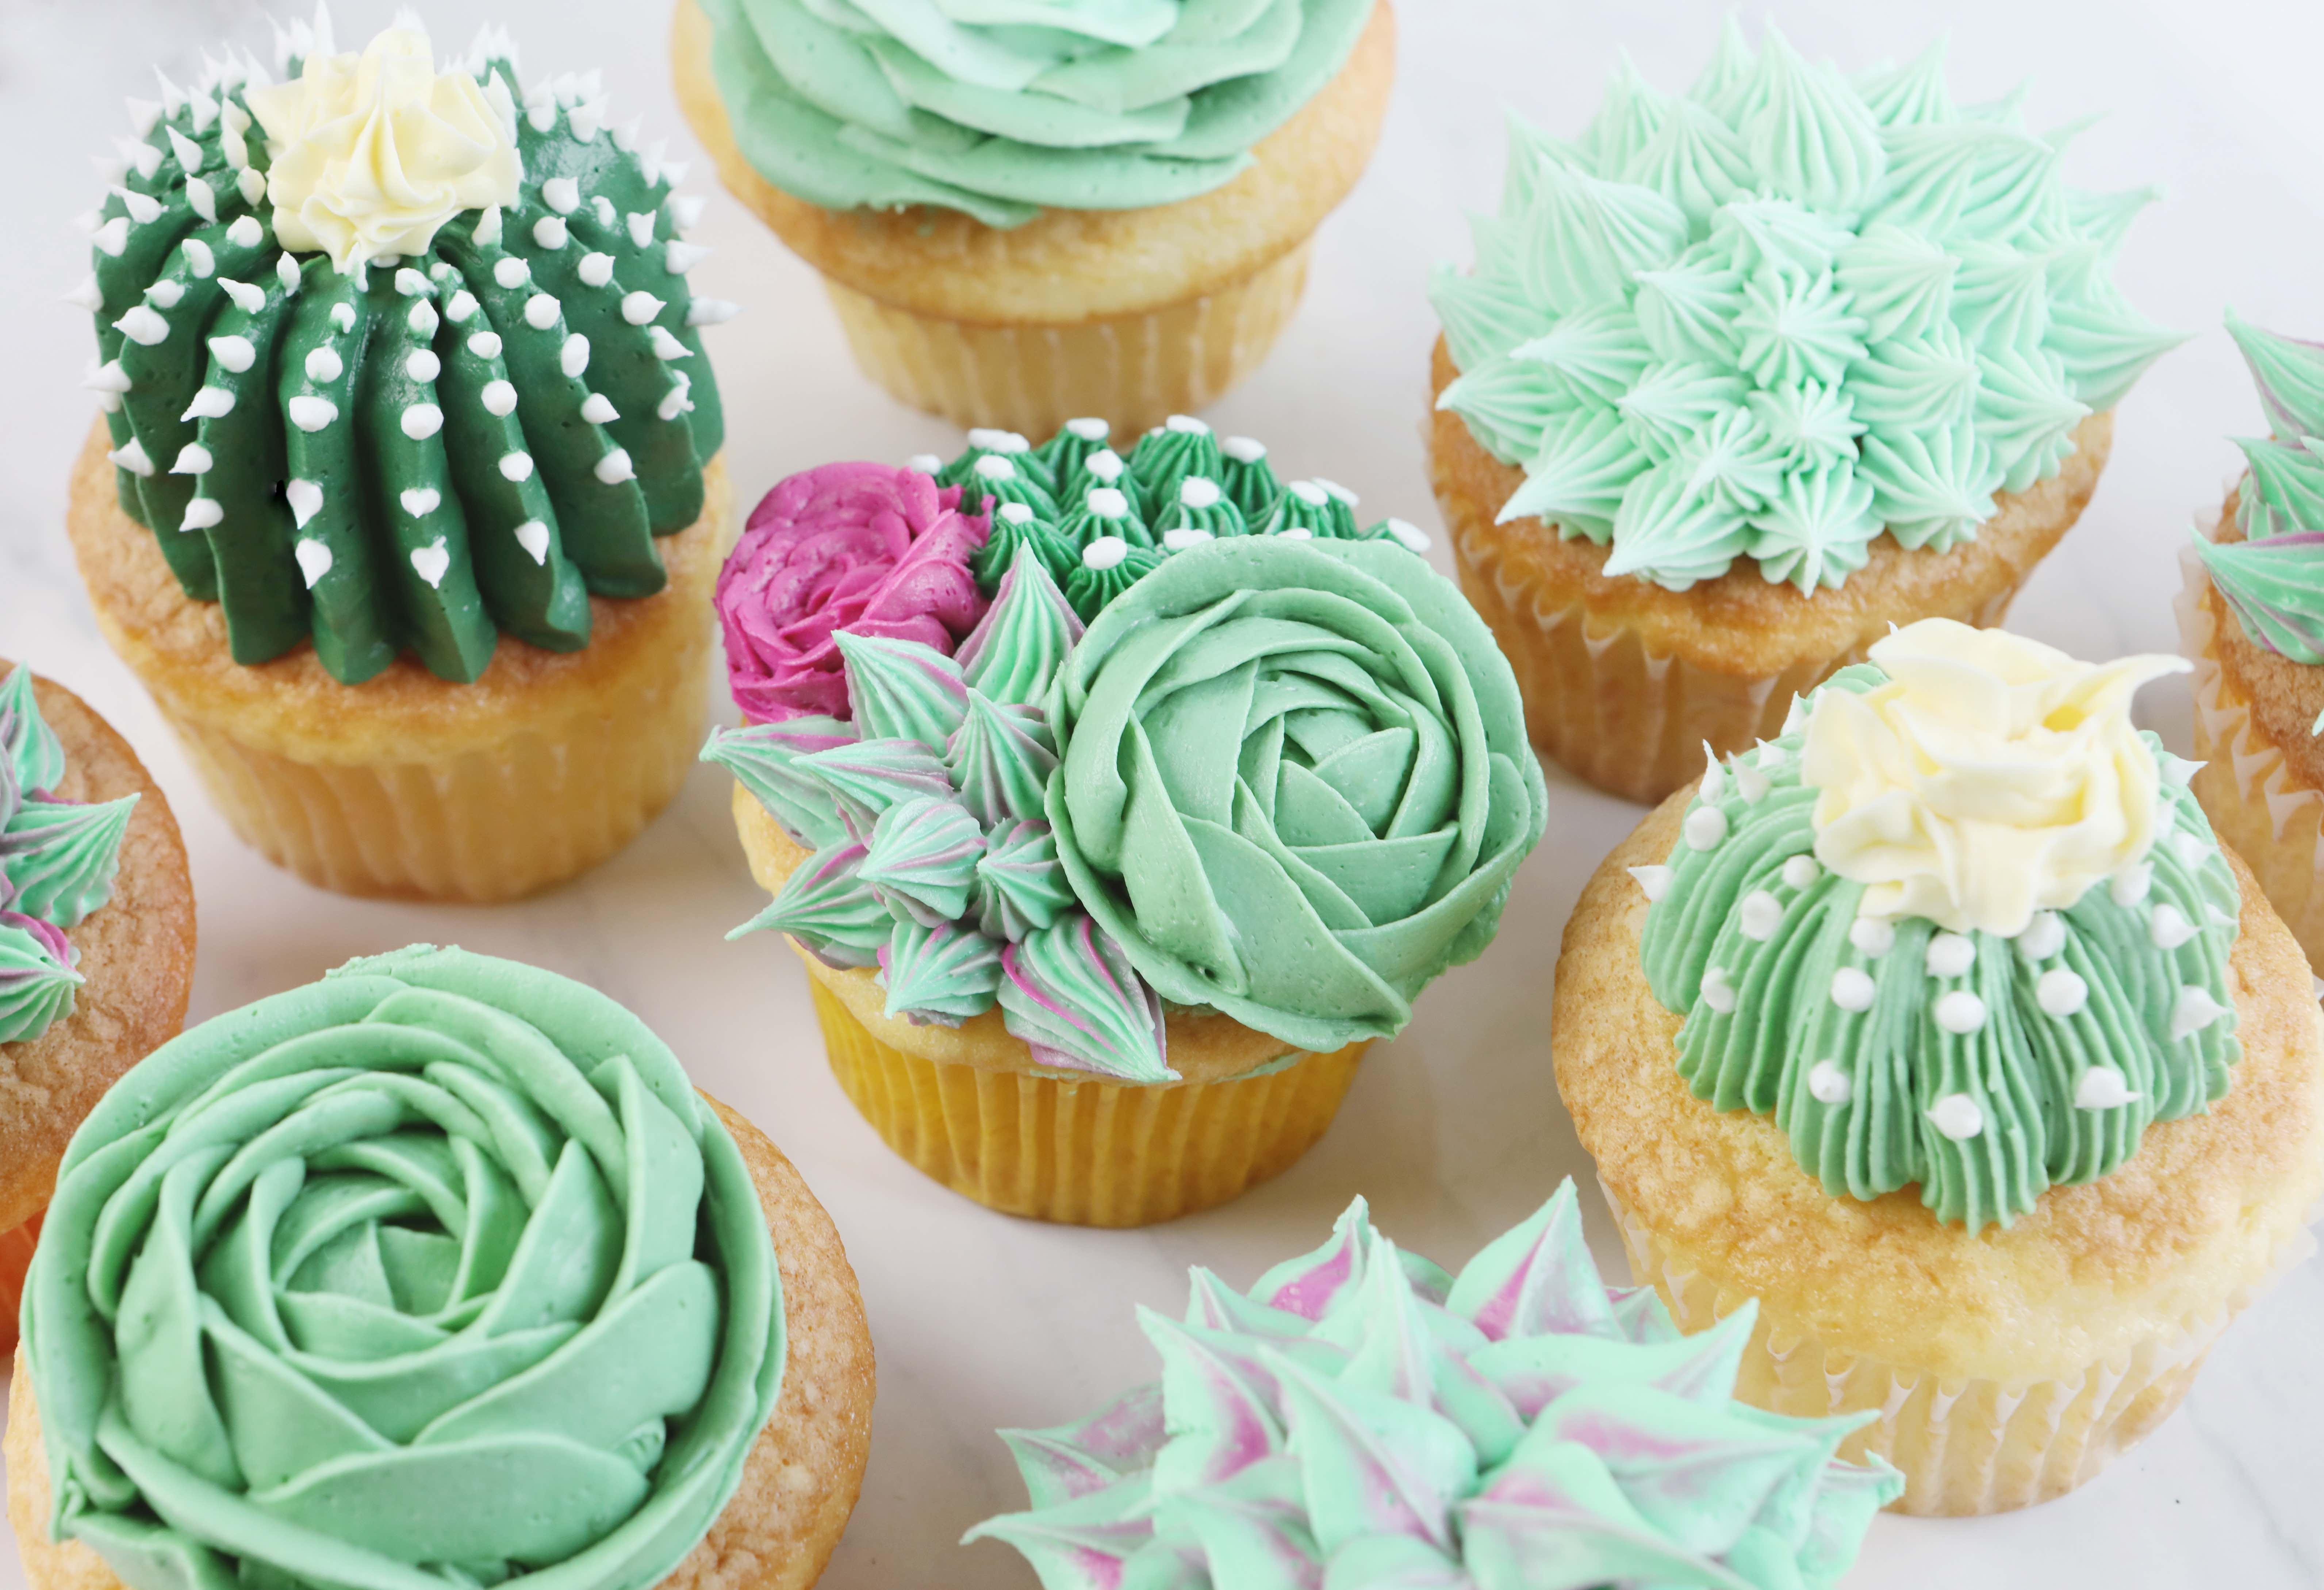 Sweet Vanilla Succulent Cupcake Decorating Tutorial Amanda Rettke The Inspired Home